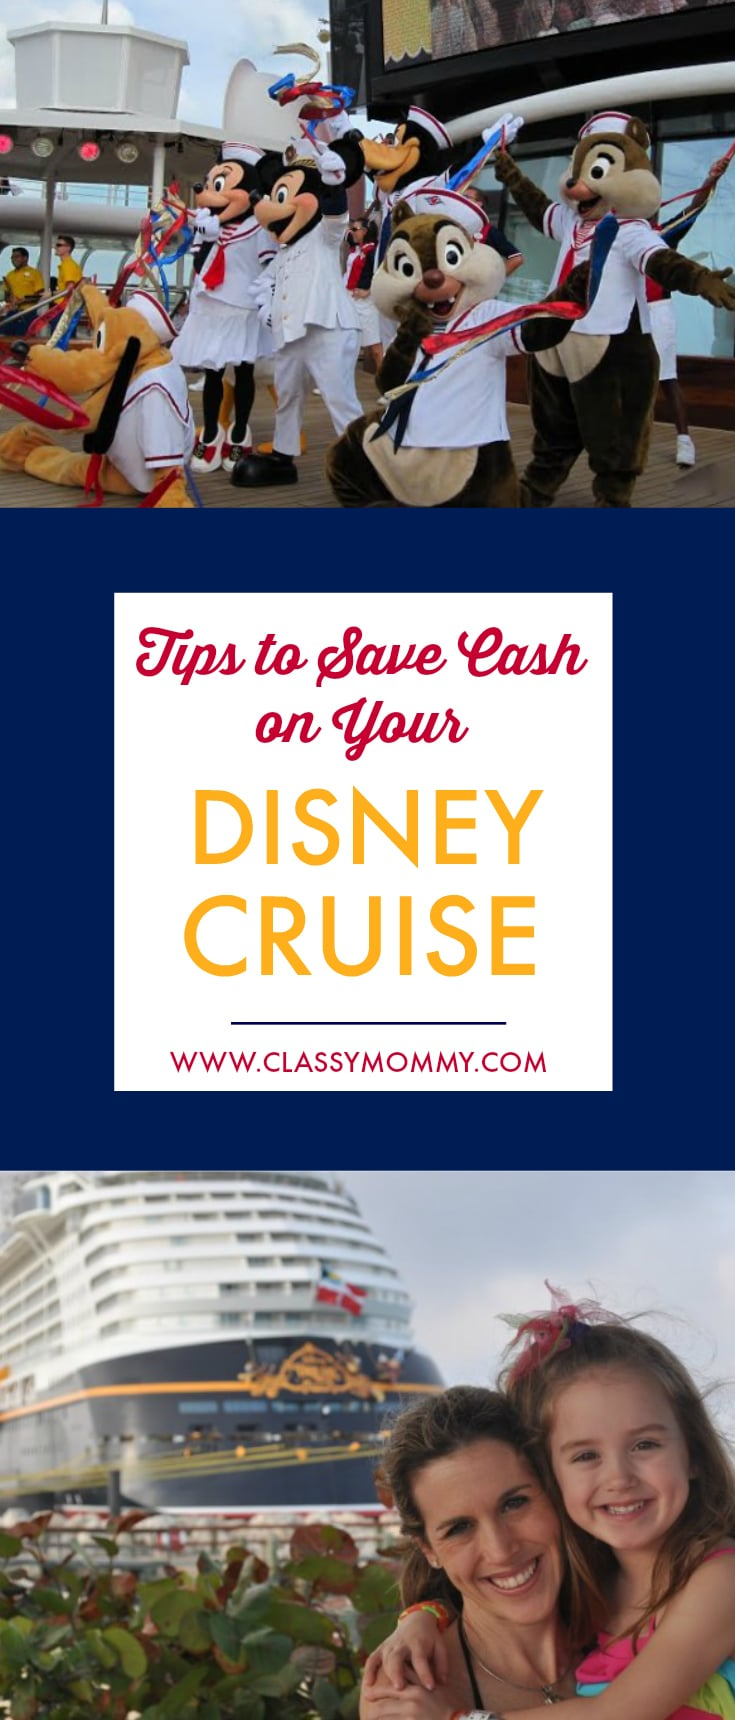 Tips To Do Your Makeup For Graduation: 6 Tips On How To Get The Best Price On A Disney Cruise